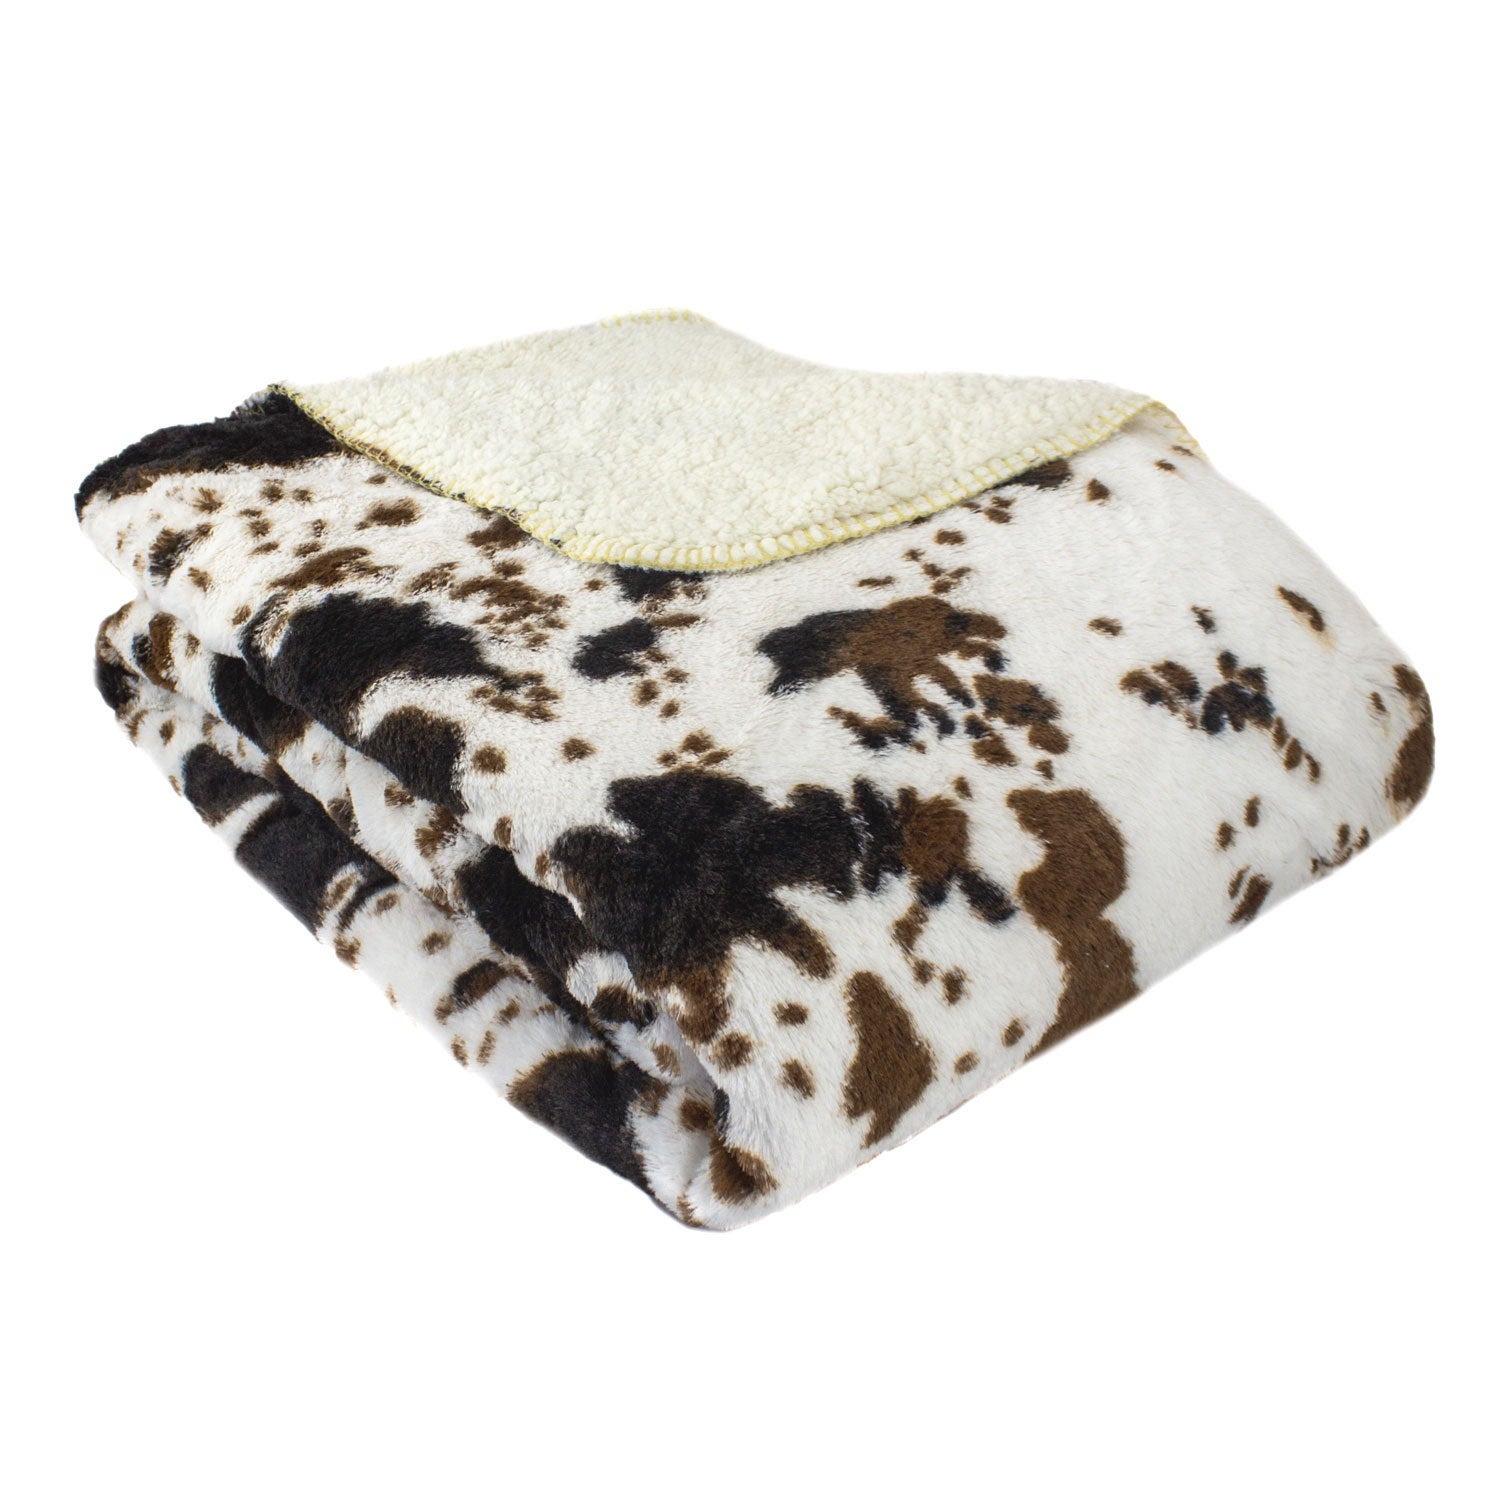 Oversized Luxury Mink Animal Print Throw With Sherpa Back Street Price Home Décor